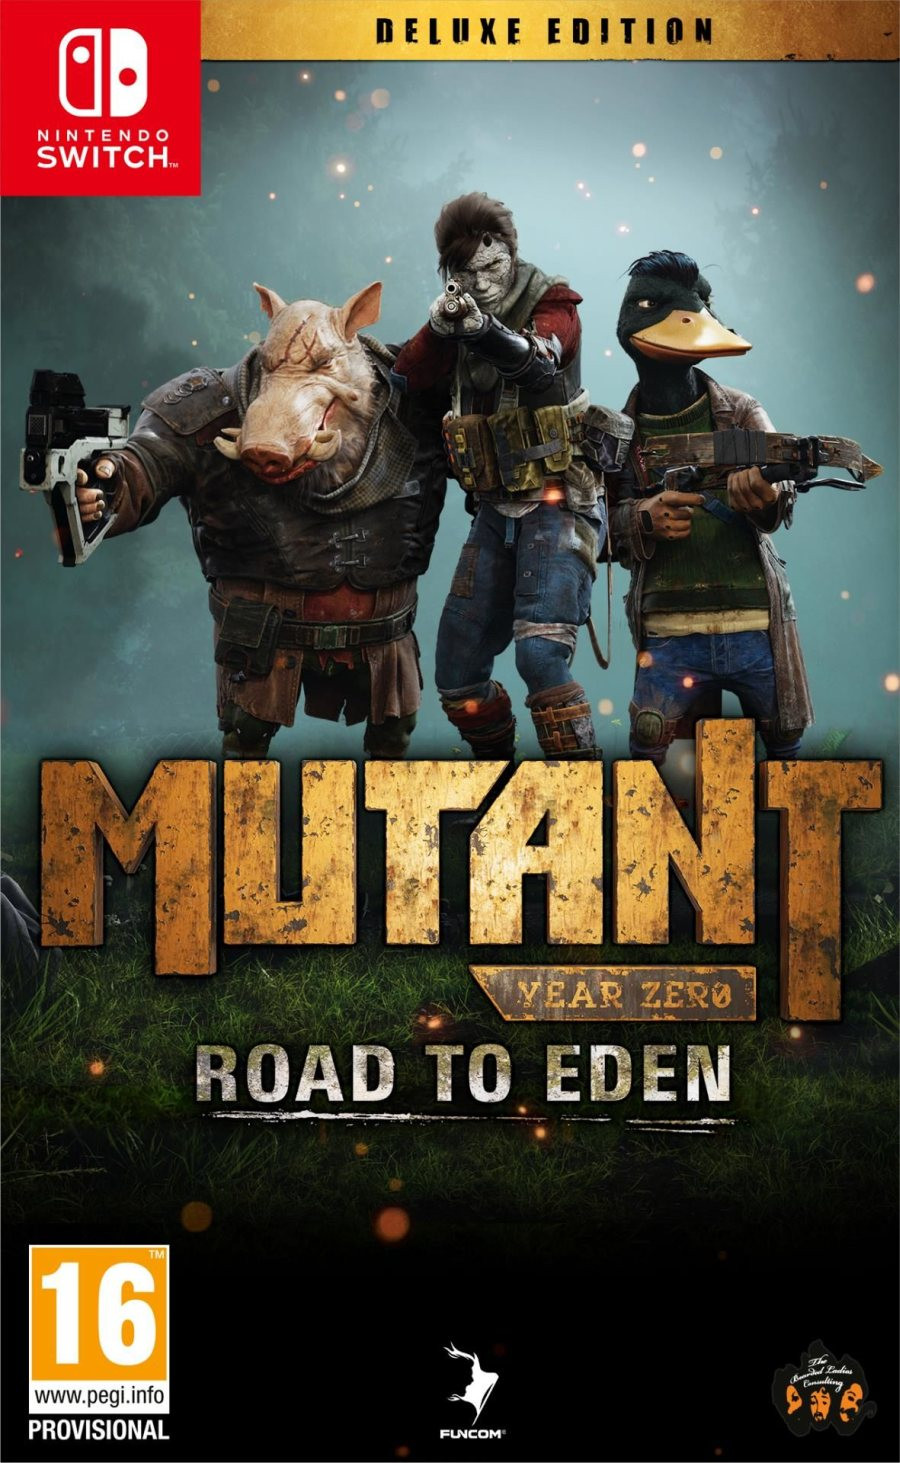 SWTICH Mutant Year Zero - Road to Eden - Deluxe Edition